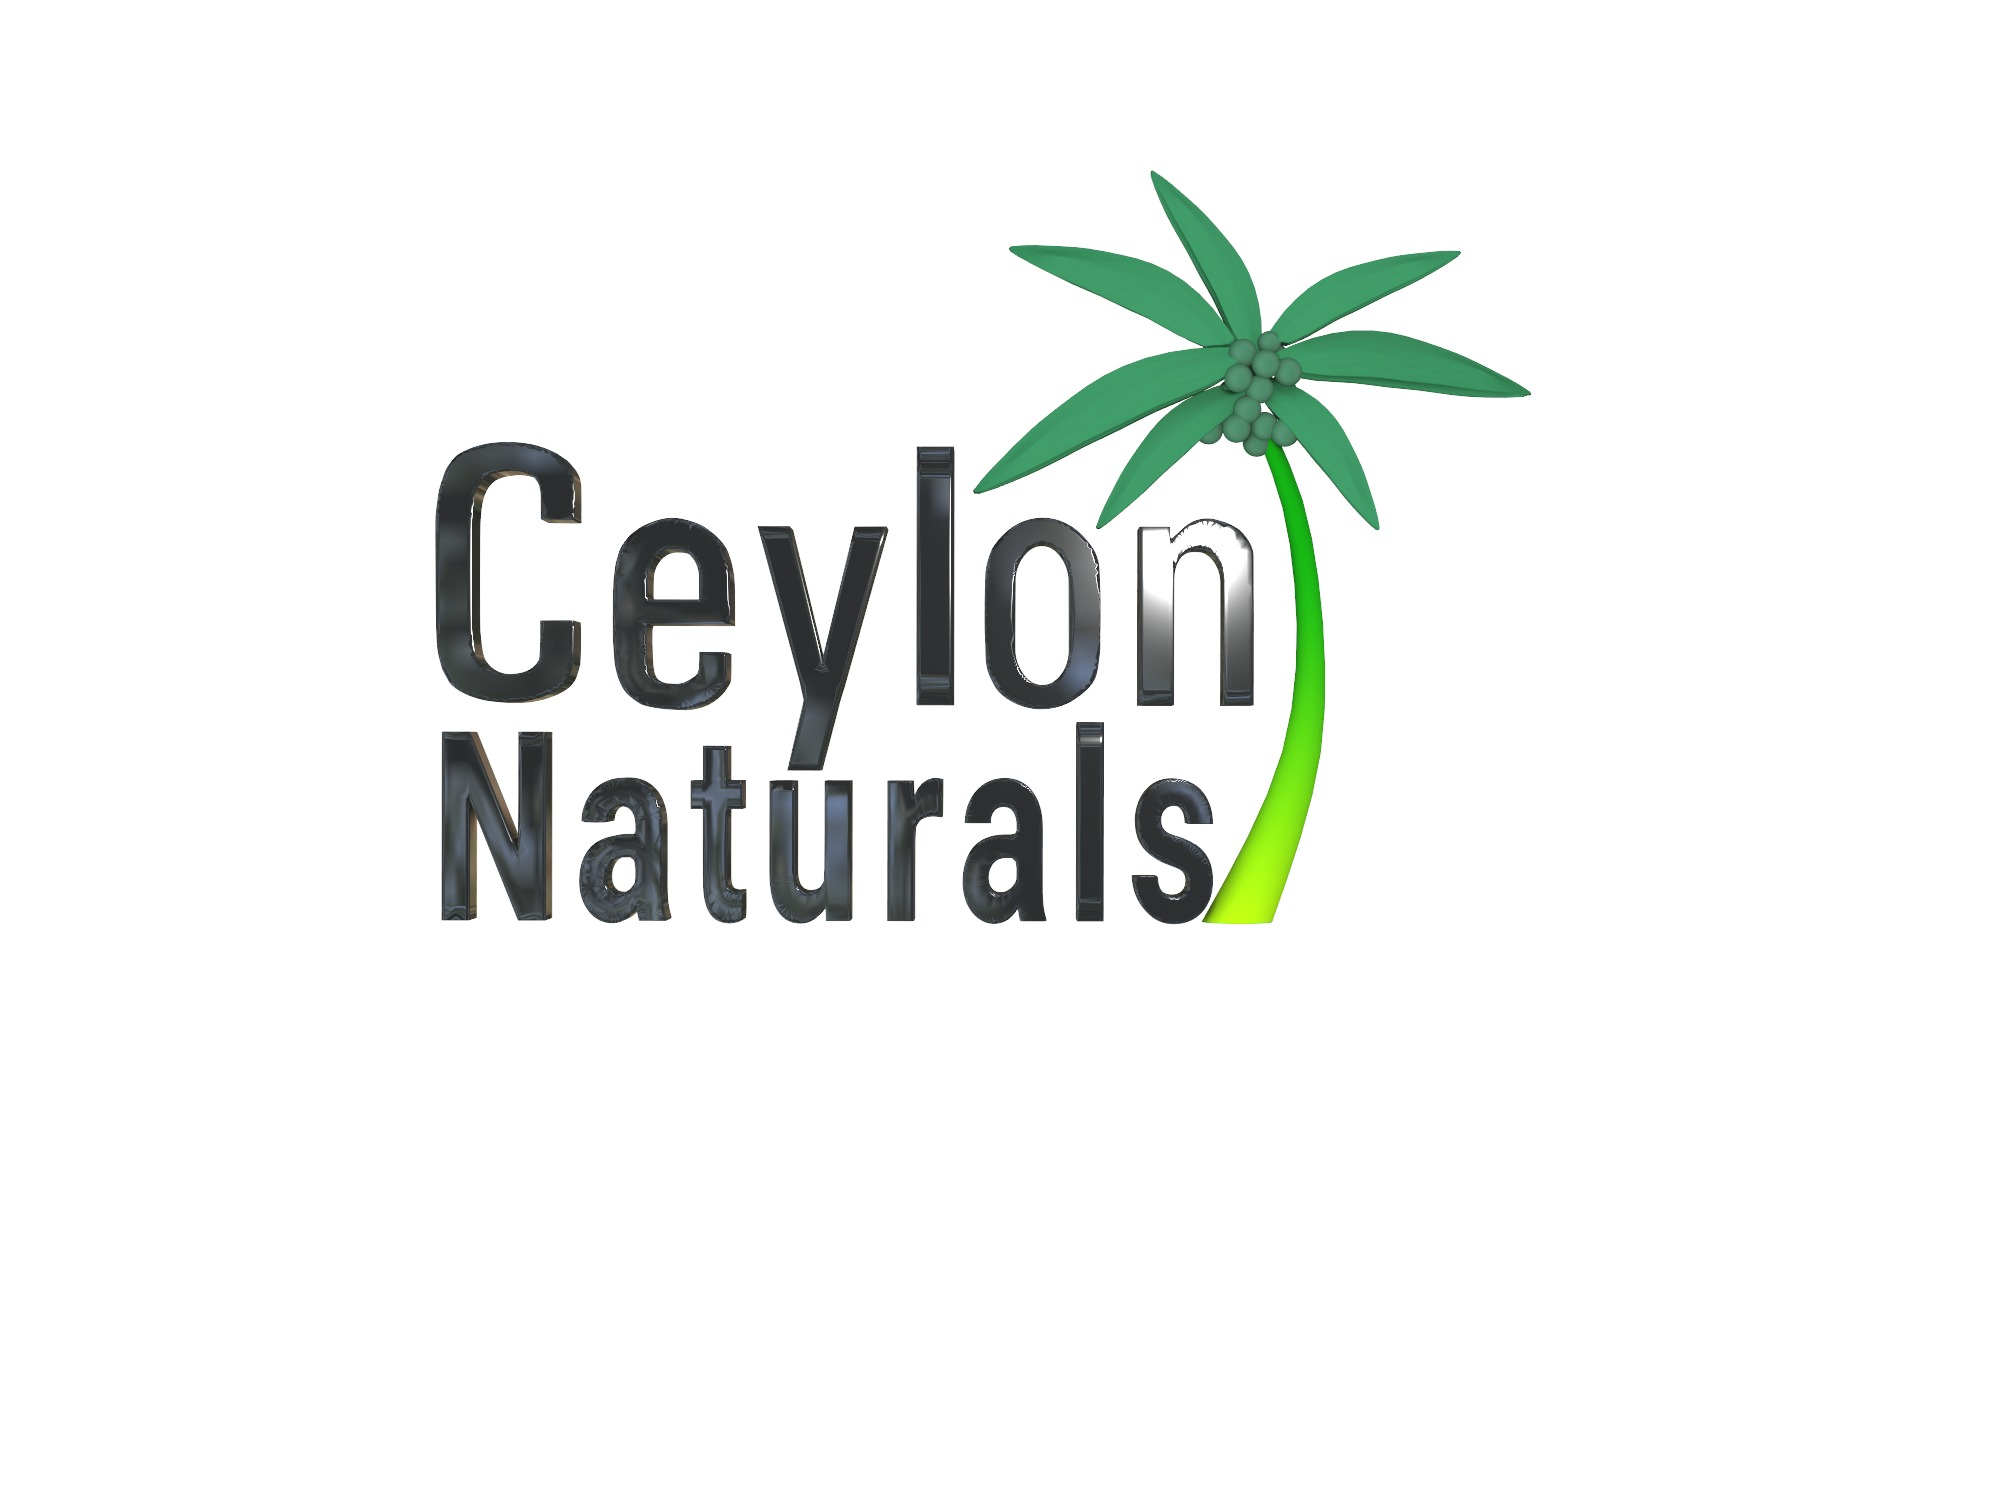 Ceylon natural logo - 3D design by Mohammed Rispic on Dec 11, 2018